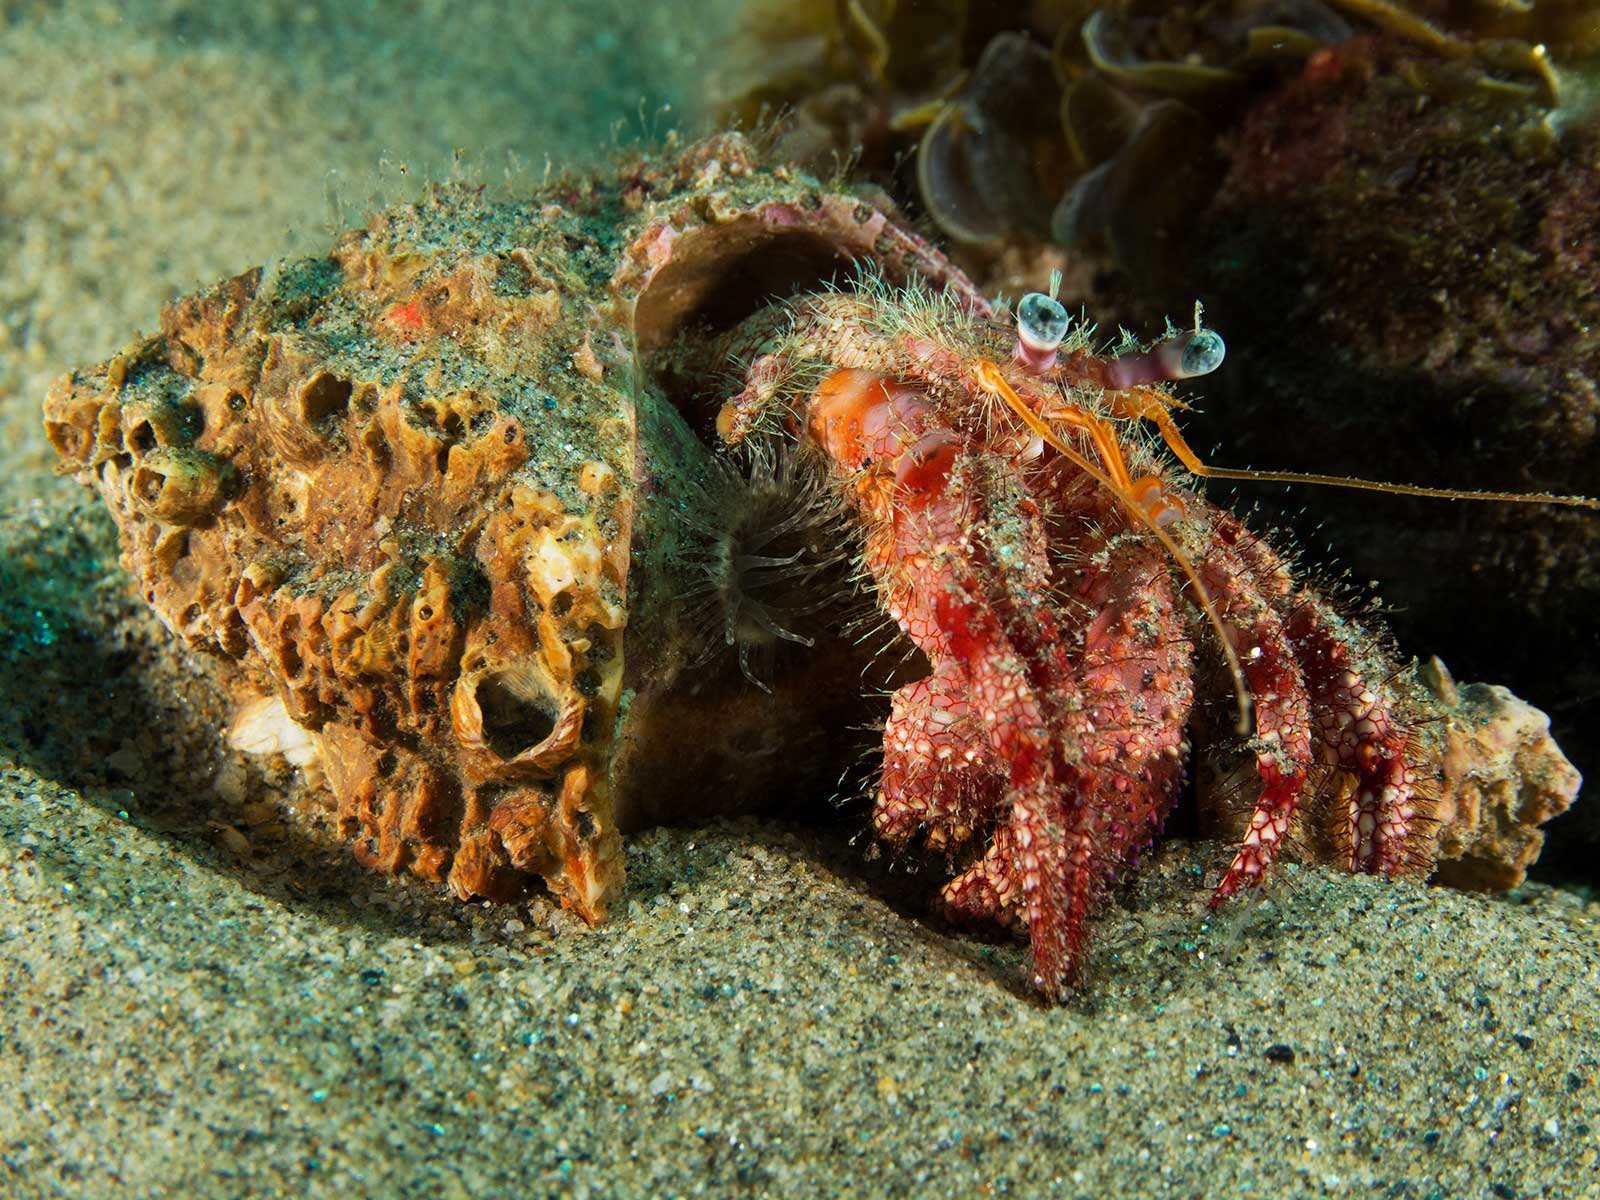 Discarded Tires Are 'Ghost Fishing' Hermit Crabs